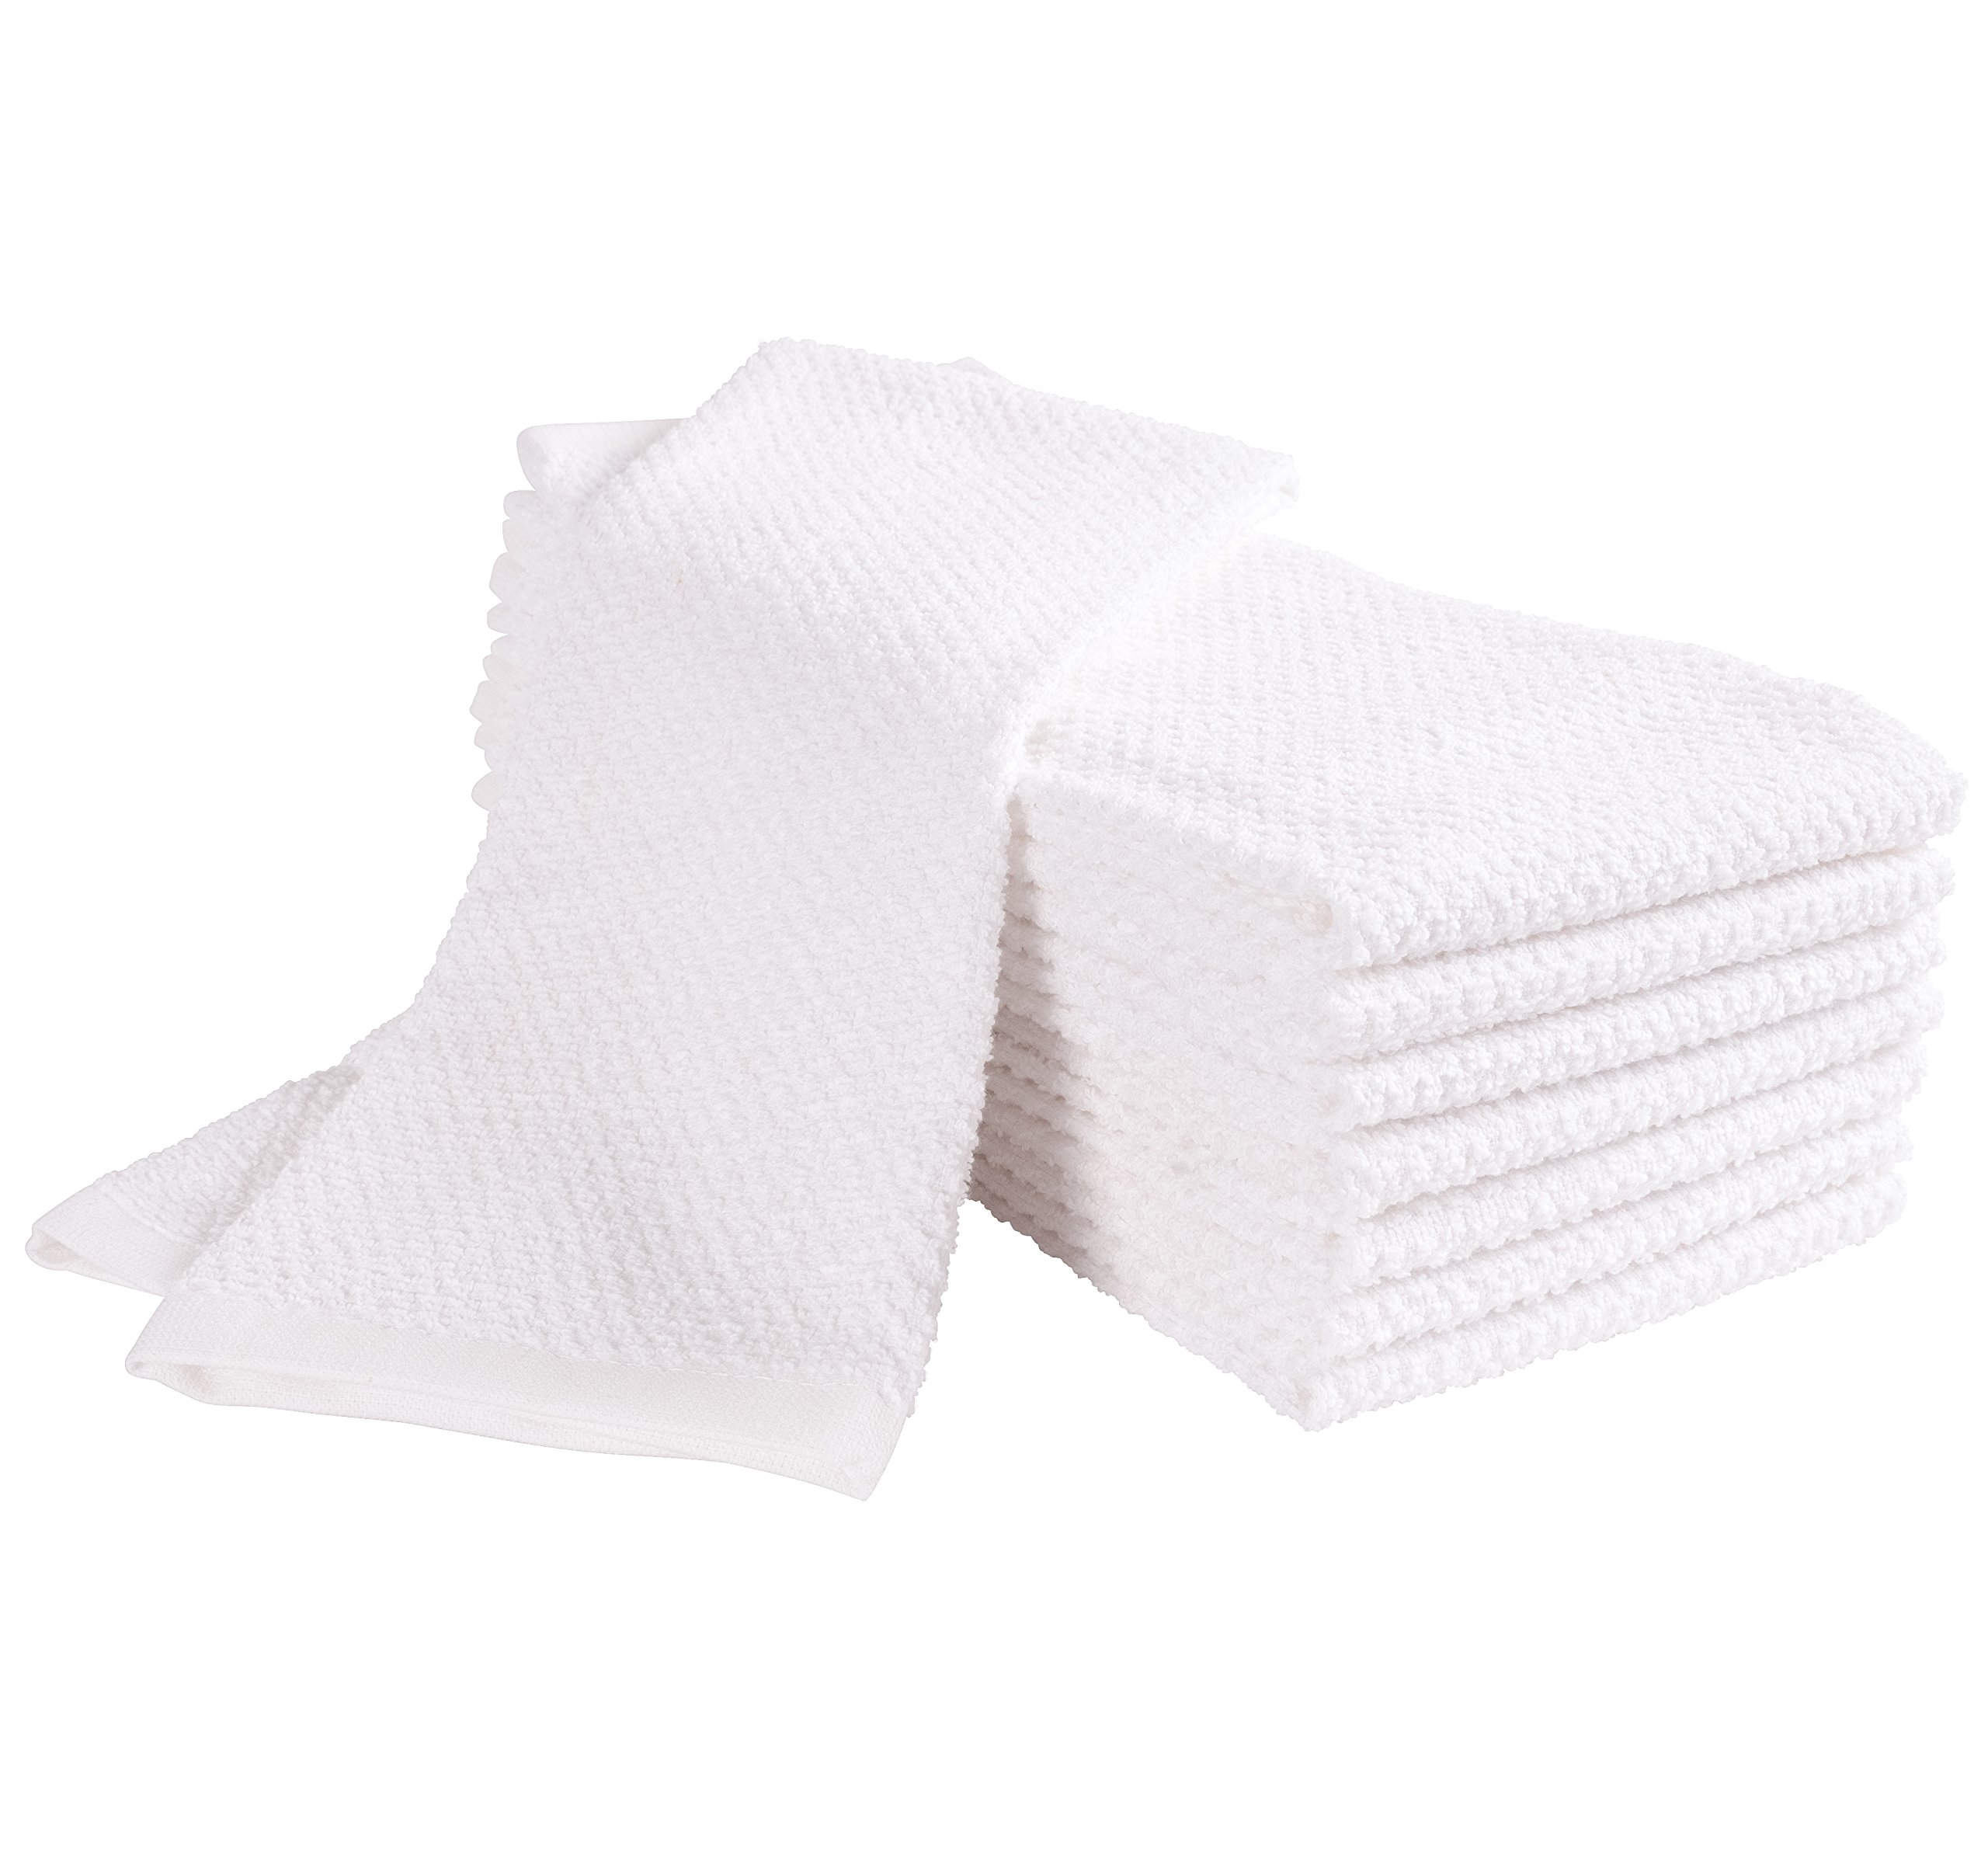 KAF Home Pantry Montclair Kitchen Towels (Set of 8, 16x26 inches), 100% Cotton, Ultra Absorbent Terry Towels, Home Decor - White